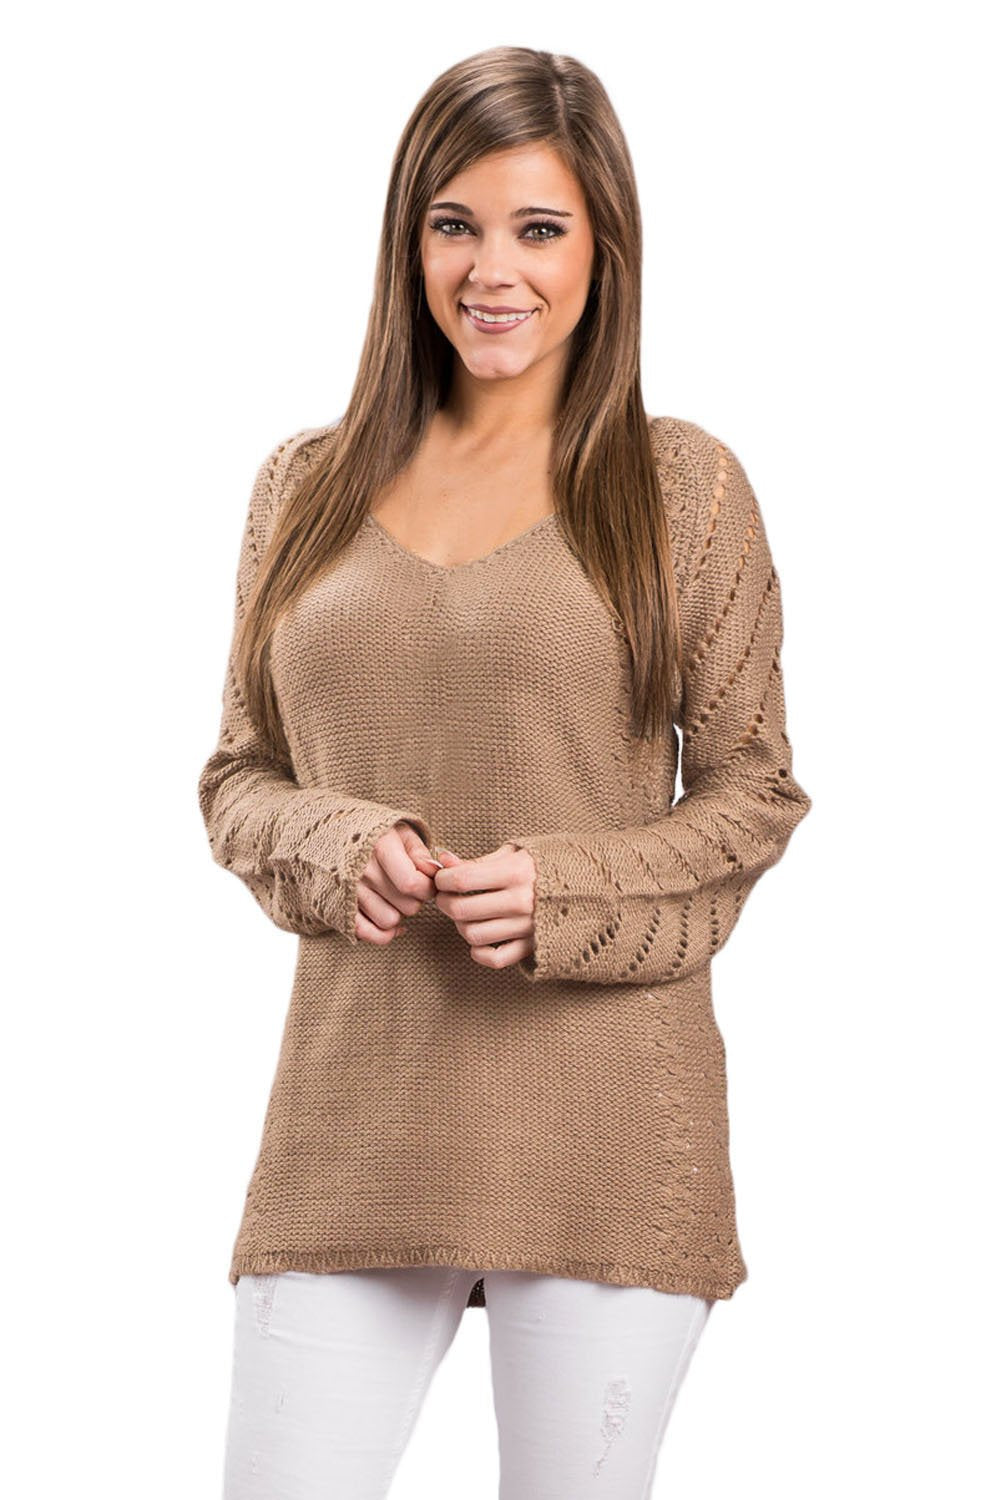 Mocha Knit Sleeve Hollow Out V Neck Loose Sweater - Winter Haven Co